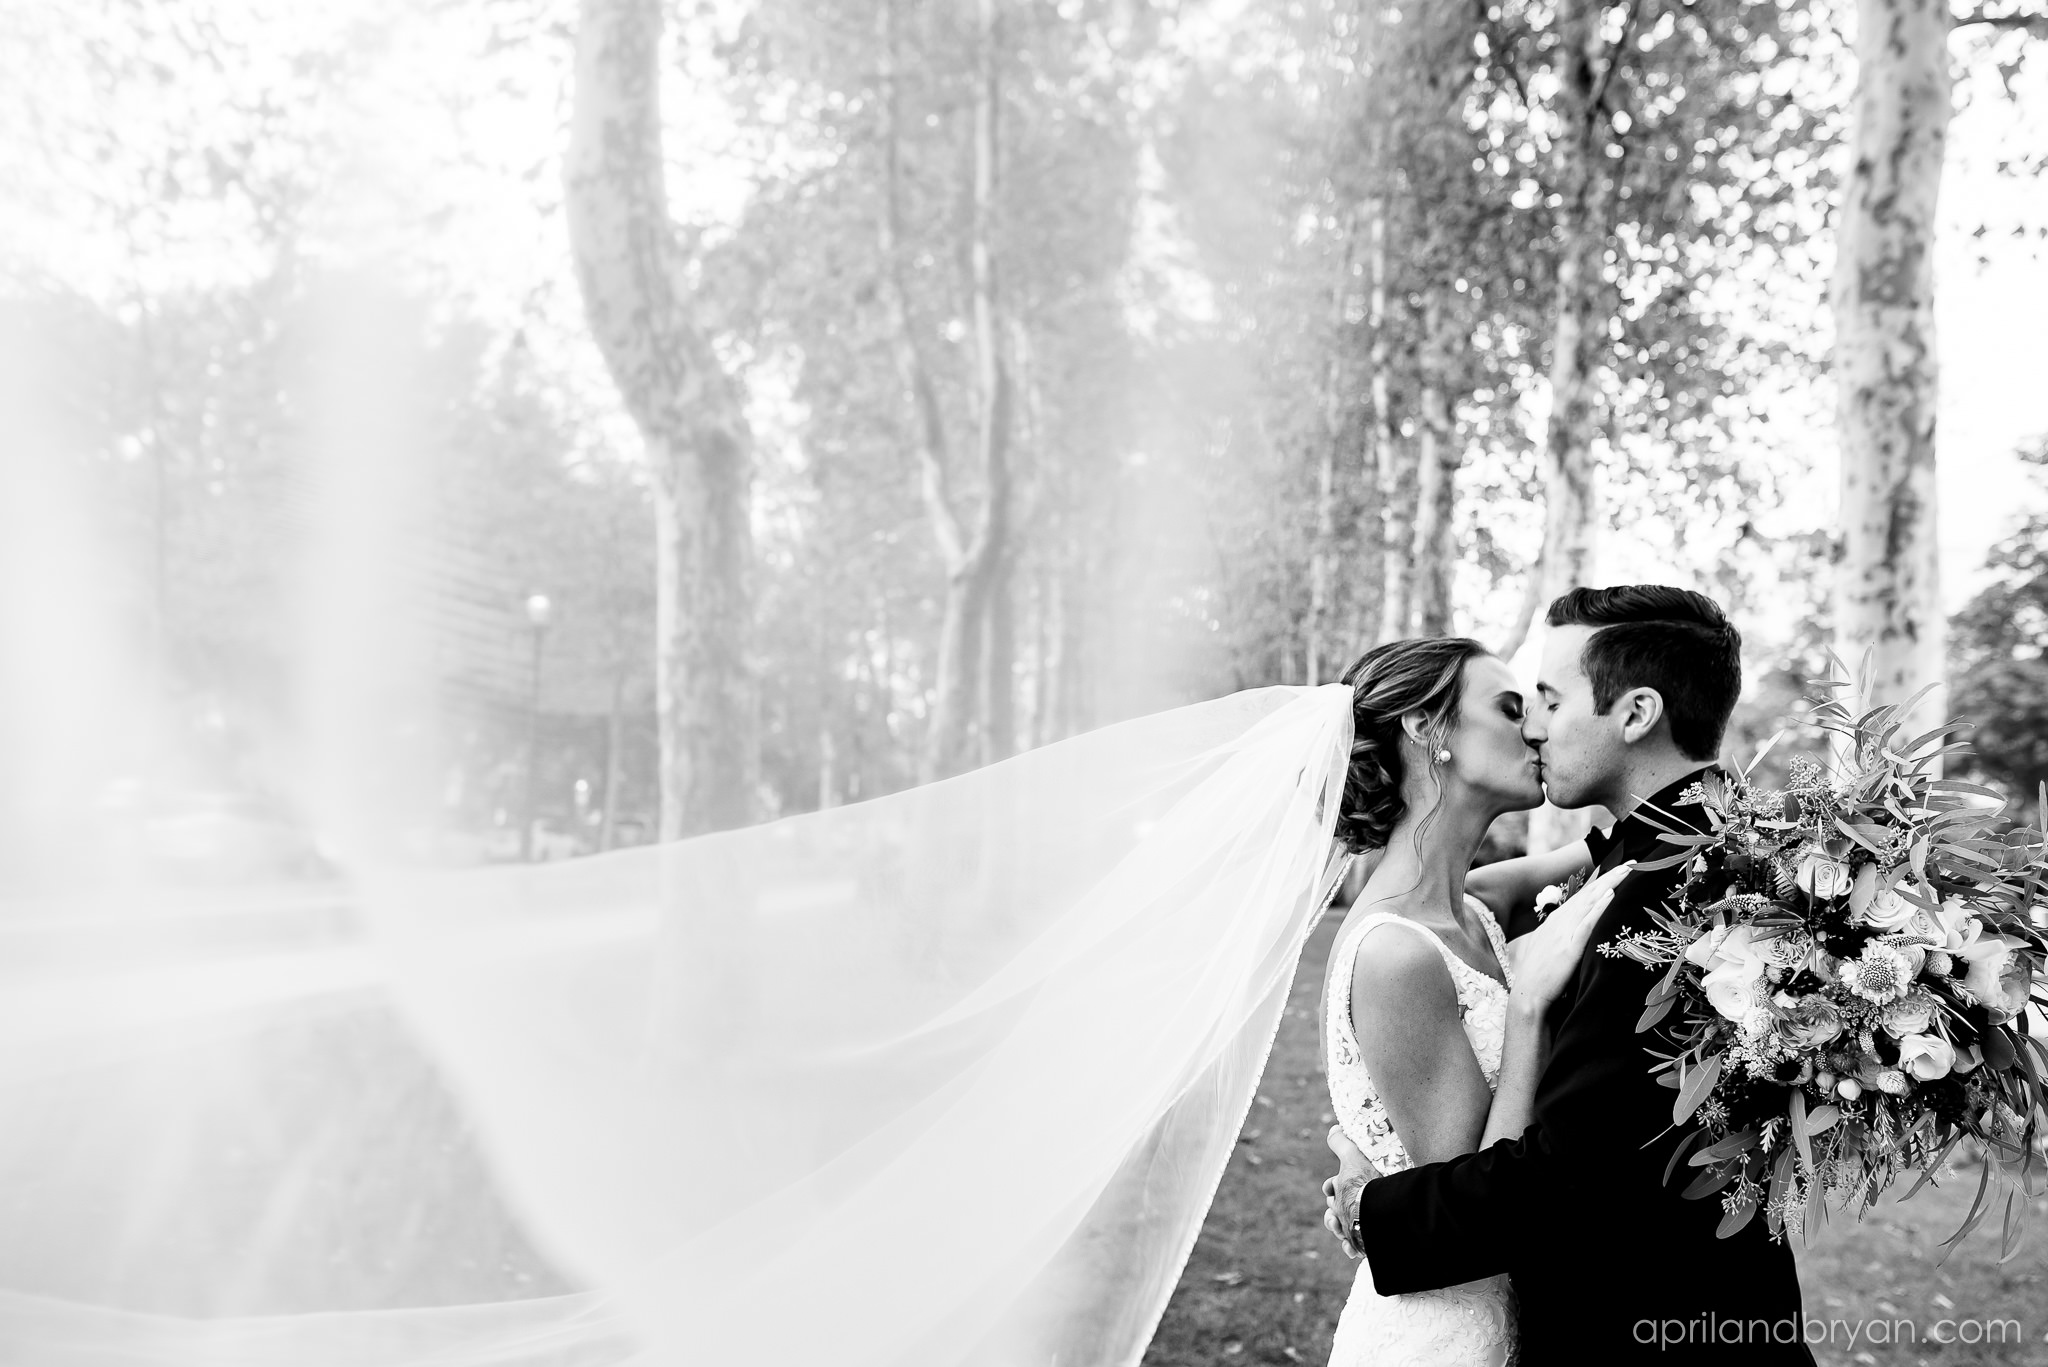 Veil in the breeze and a kiss on the lips these newlyweds celebrate their union in the courtyards of the Franklin Institute in Phialdelphia, PA. Featured on Dream Weddings.